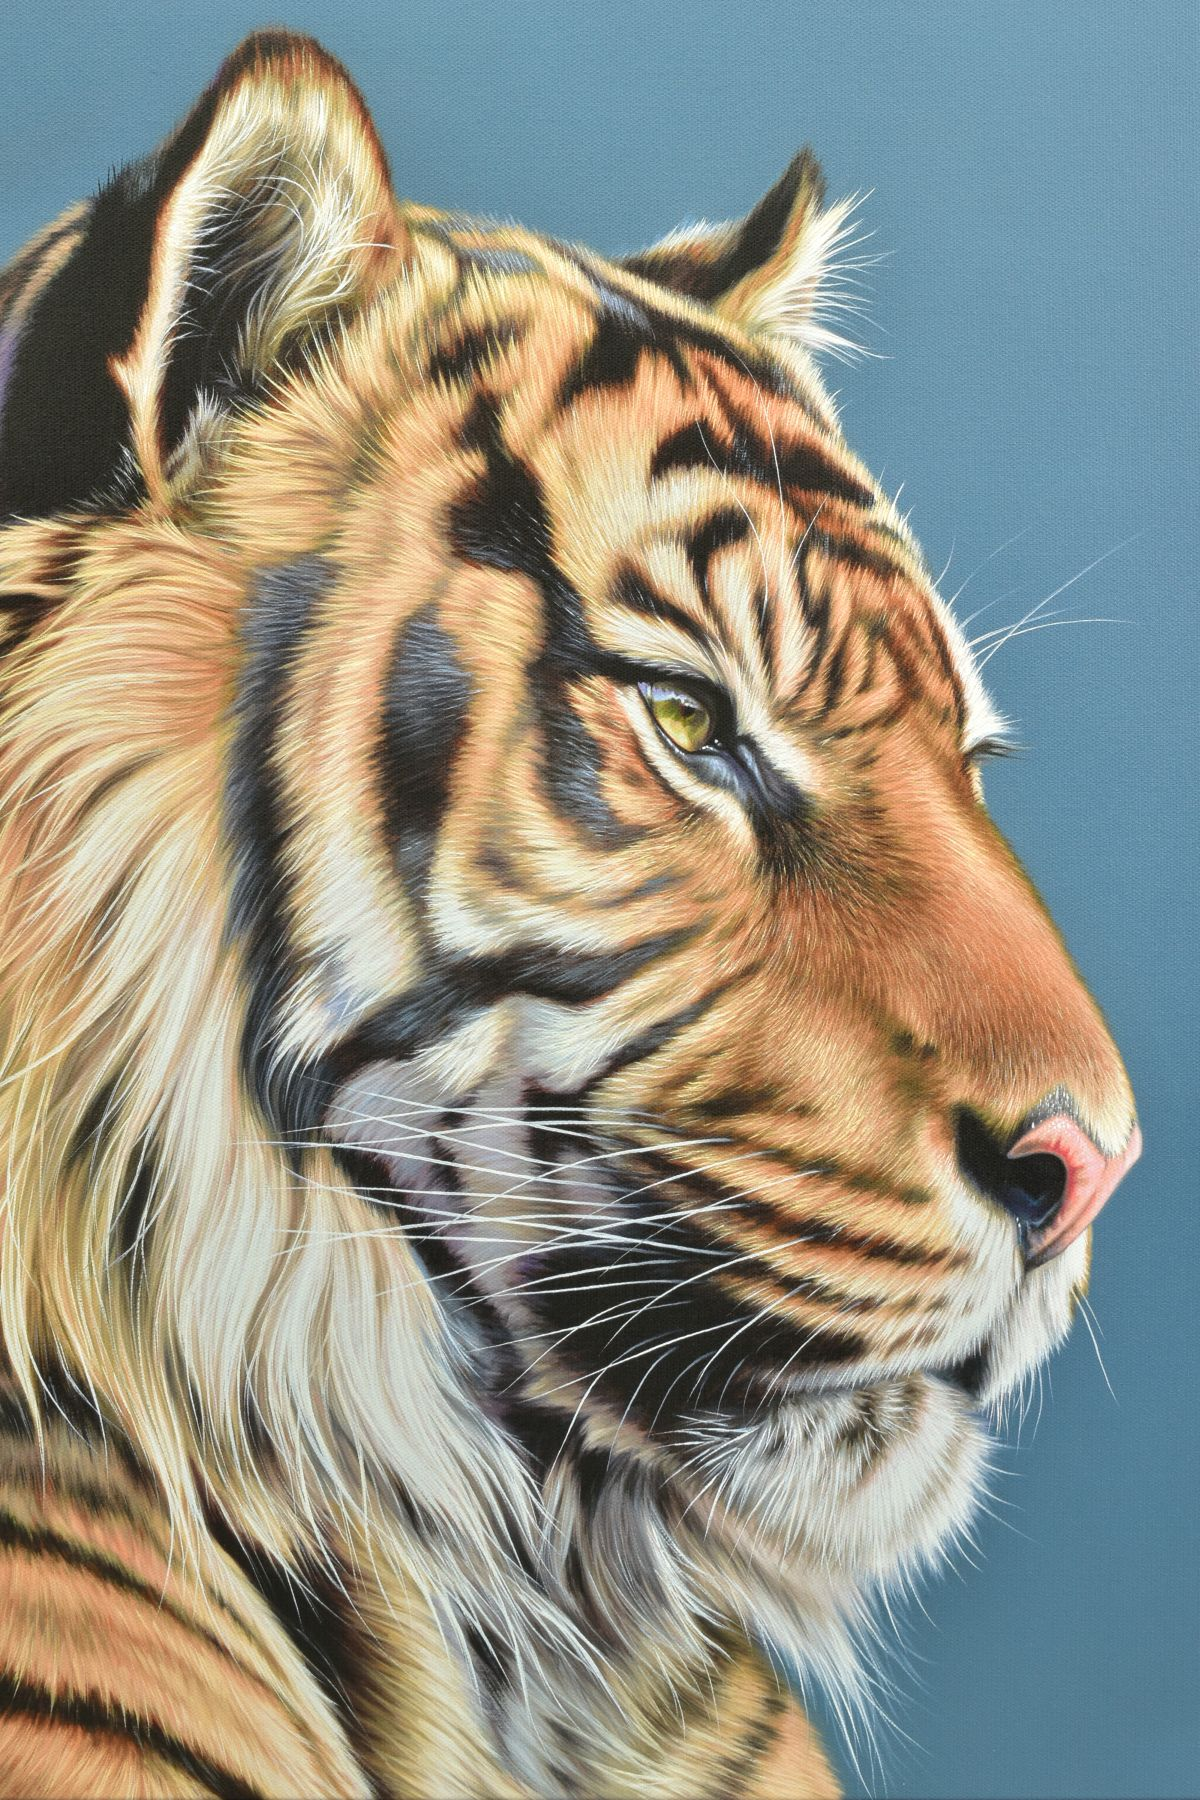 DARRYN EGGLETON (SOUTH AFRICA 1981), 'The Sentinel', an artist proof print of a Tiger, 16/20, signed - Image 2 of 6